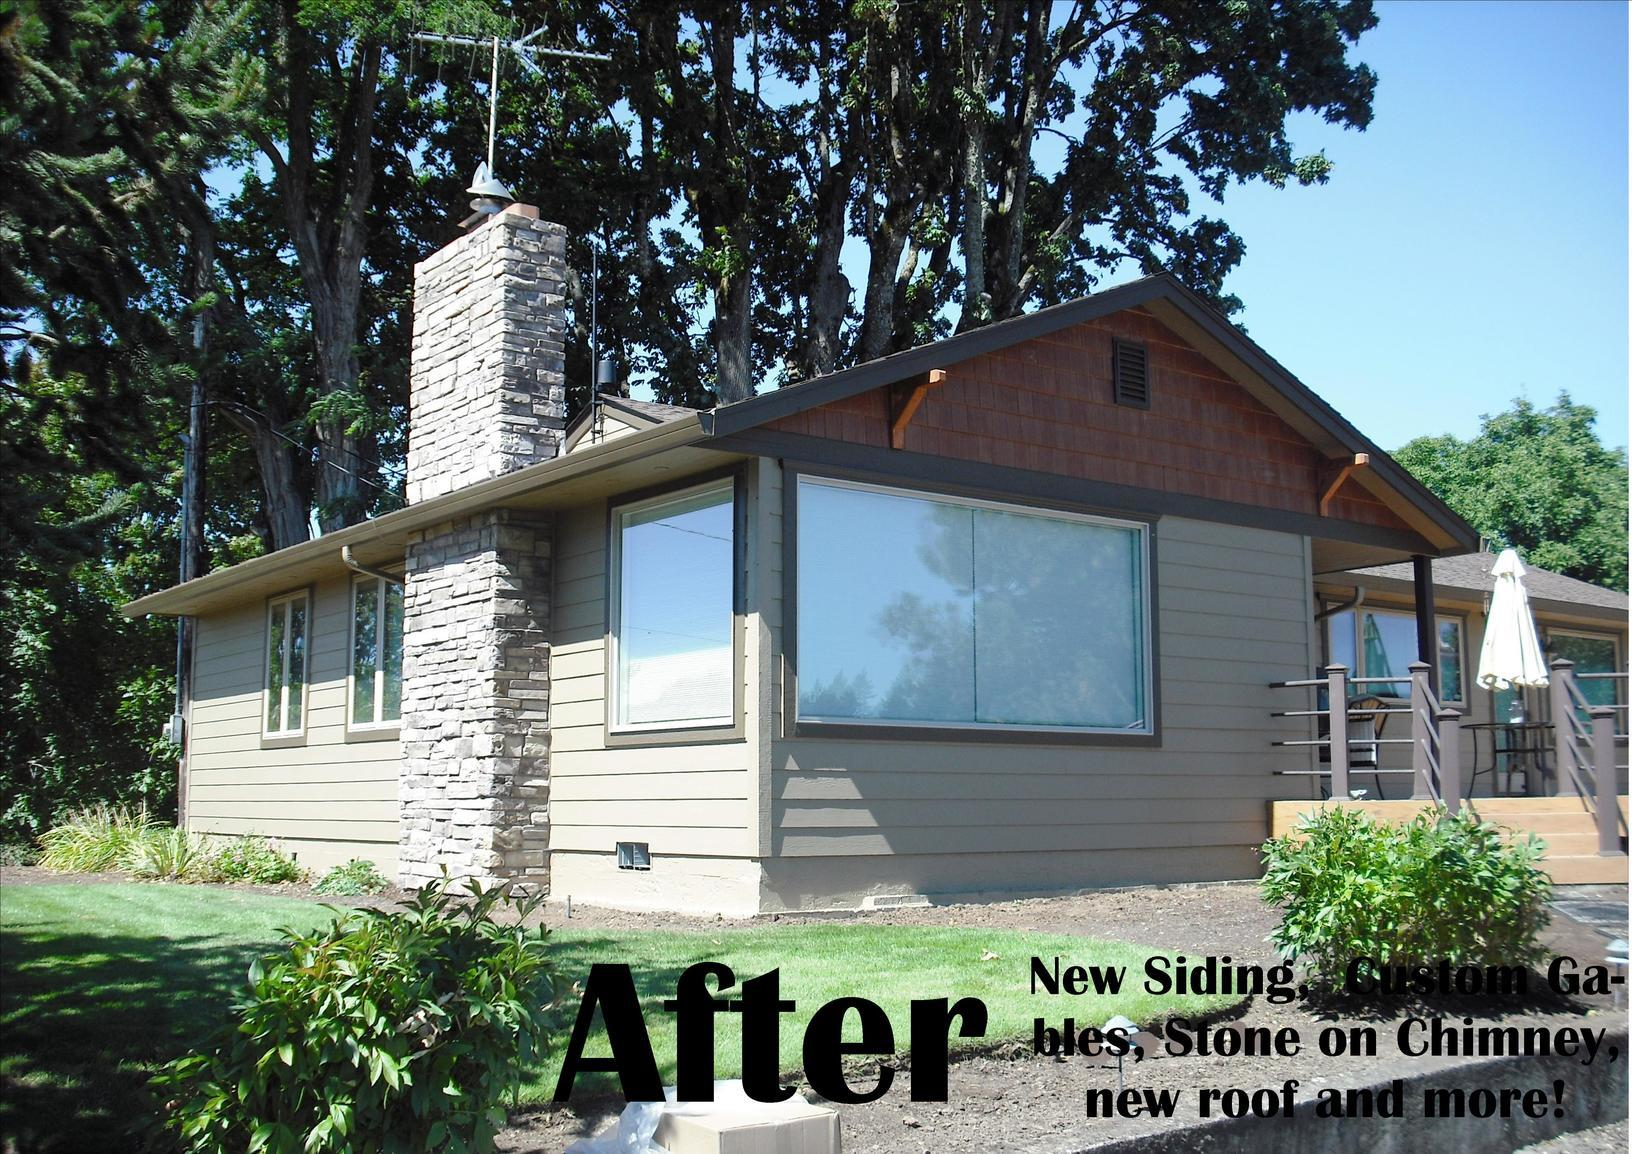 Fiber Cement Siding, Chimney Wrap and Roof Replacement Contractors in  Portland, Or - After Photo